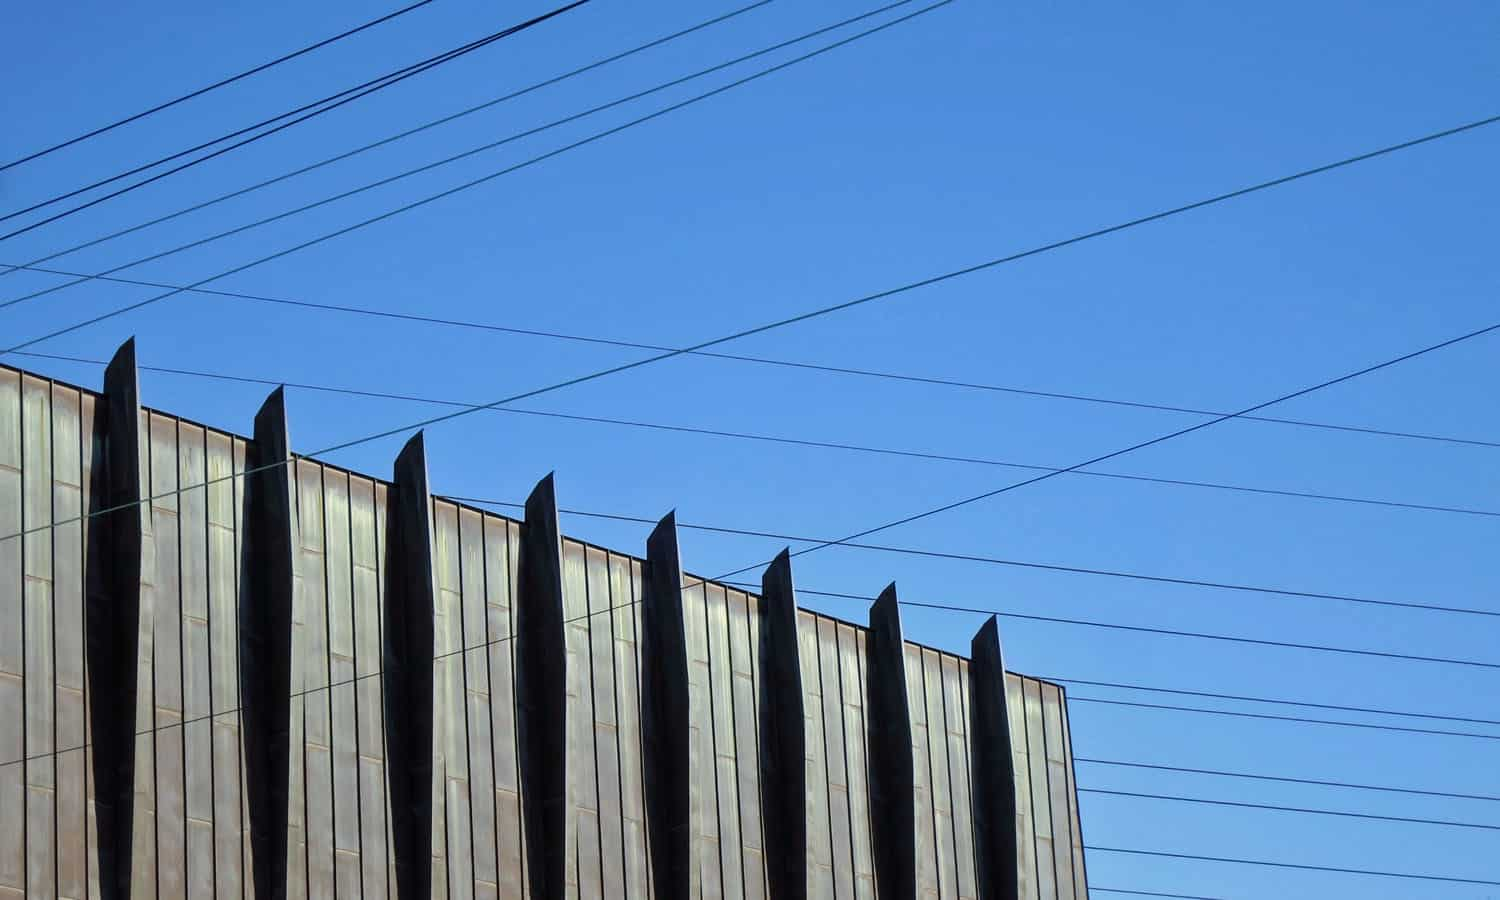 Amidst the hydro lines, the volume of the sanctuary is characterized by the rhythm of columns and the copper cladding